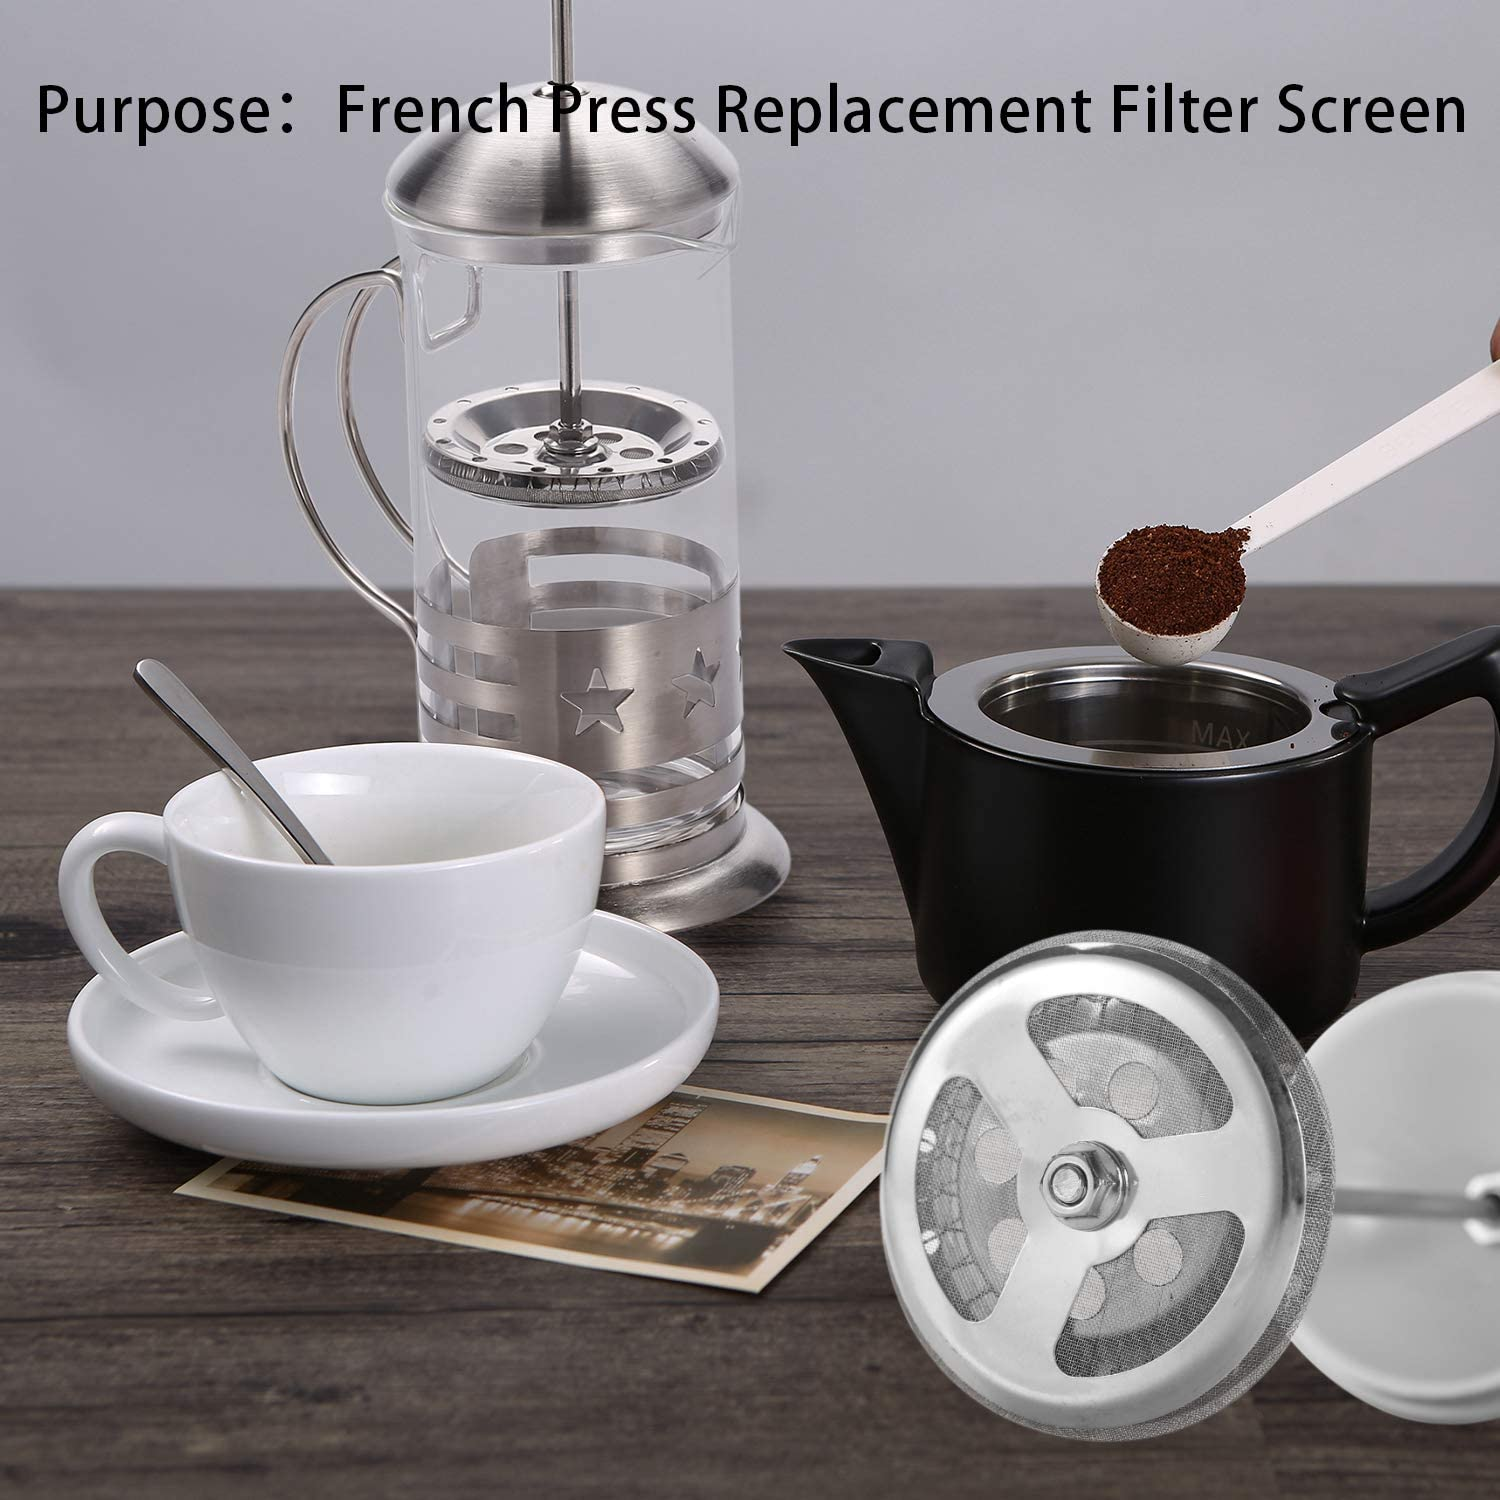 Reusable Stainless Steel Coffee Machine Mesh Filter Universal 1000 ml//34 oz//8 Cup 8 Pack French Press Replacement Filter Screen